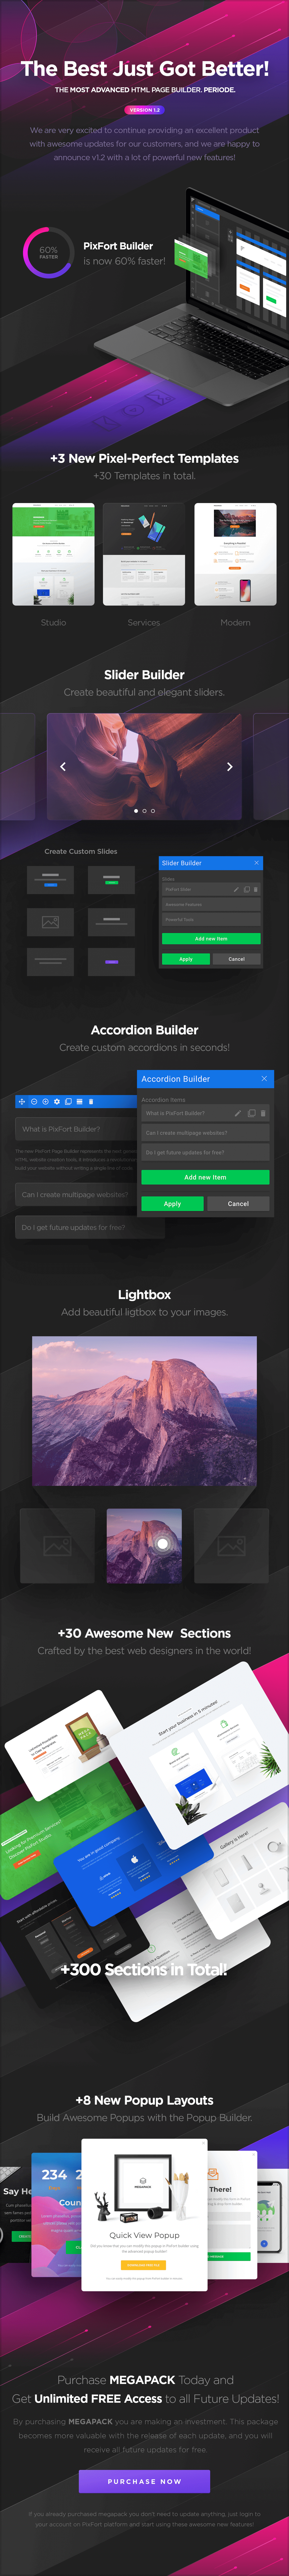 MEGAPACK – Marketing HTML Landing Pages Pack + PixFort Page Builder Access - 3